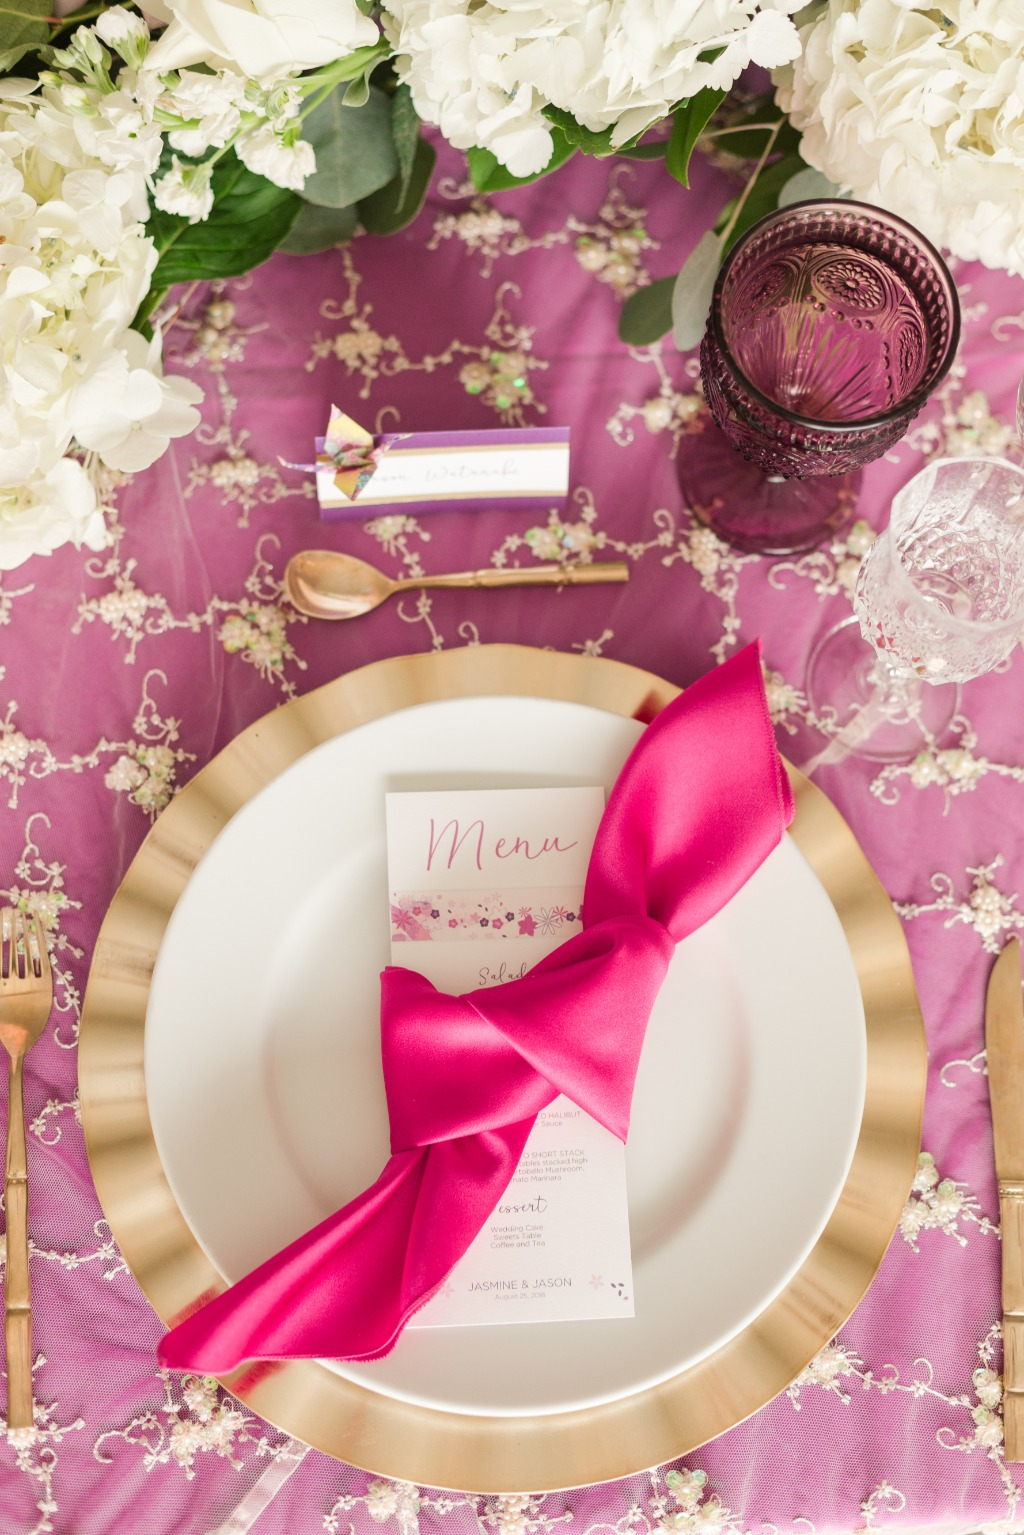 Want to add a pop of color to your tablescape? Do it with your napkins! We love this bright fuchsia napkin tied around the menu card